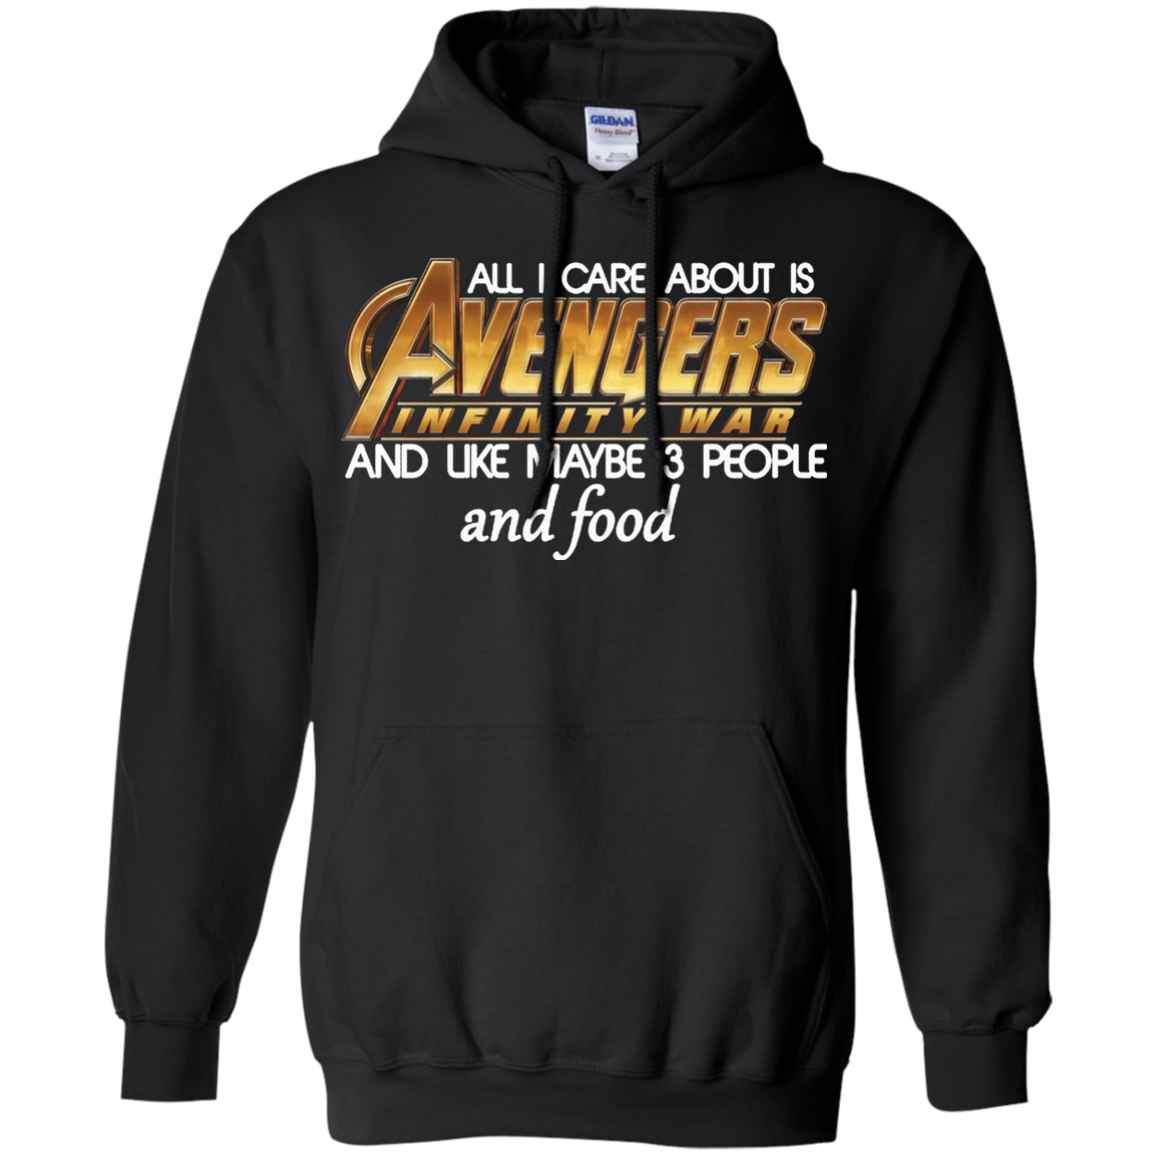 All I Care About Is Avengers Infinity War And Like Maybe 3 People Shirt Hoodie Men